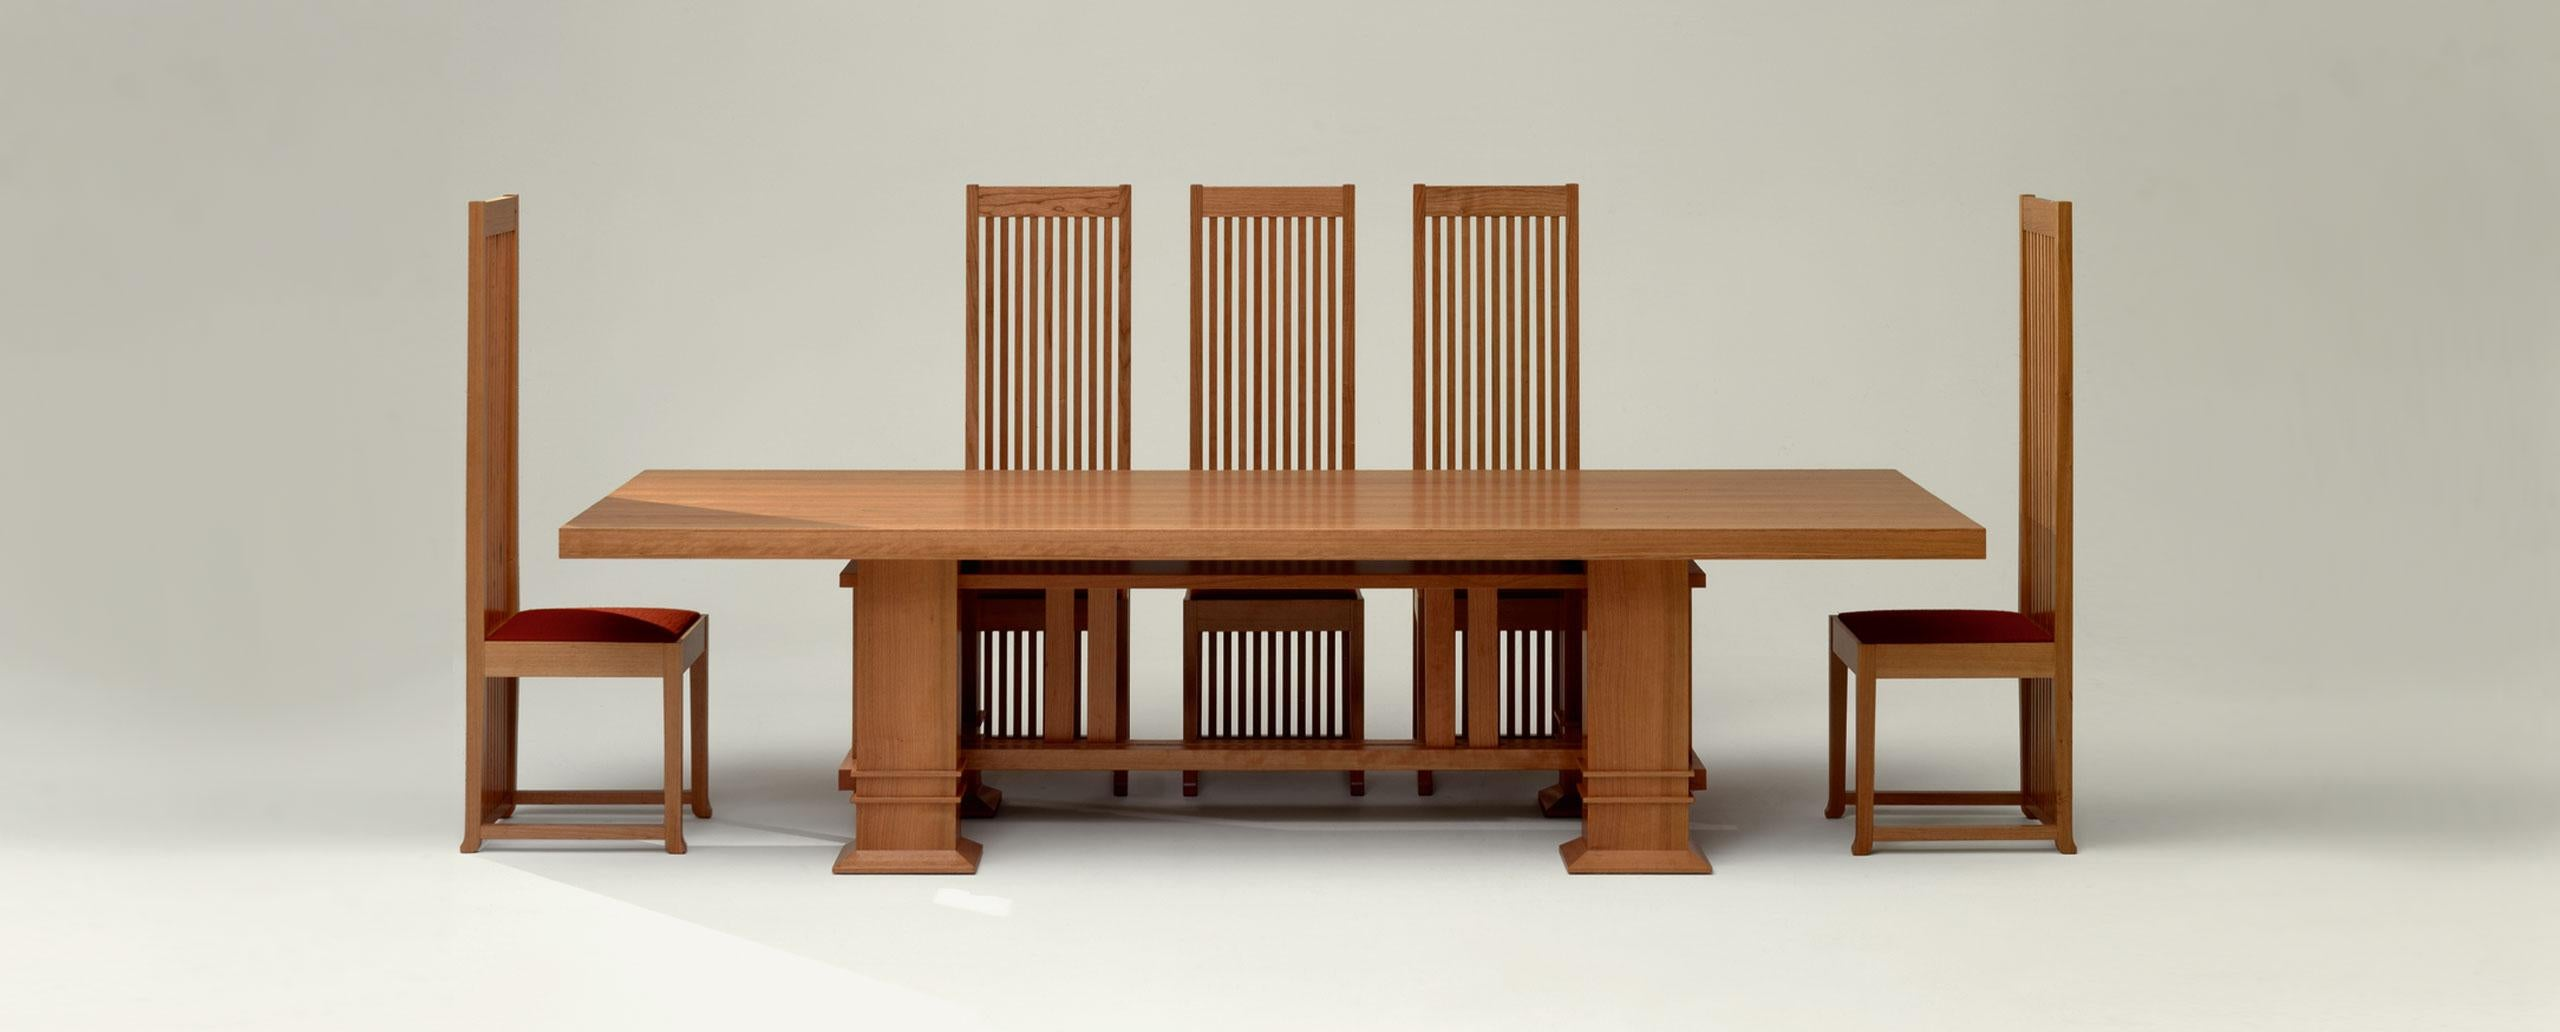 A dining table surrounded by FRANK LLOYD WRIGHT ROBIE CHAIRS, reissued by Cassina and offered by DADA Studios